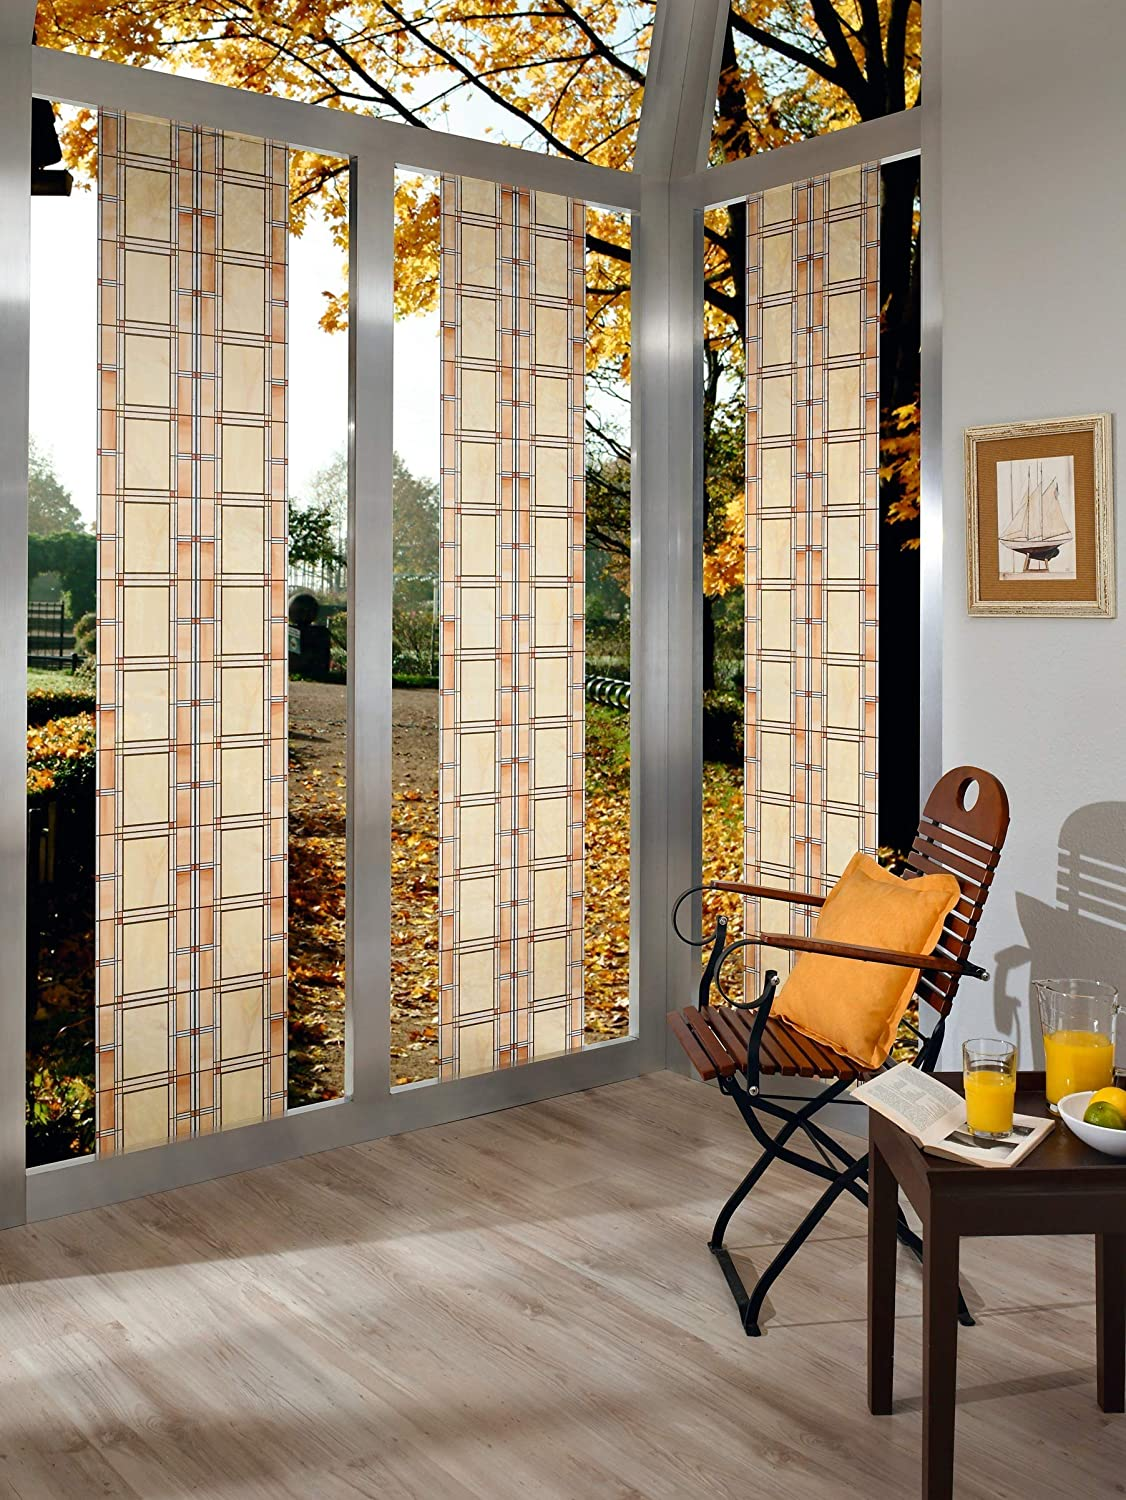 d-c-fix  Self-Adhesive Privacy Glass Window Film Arts /& Crafts 346-0437 17.71 x 78 Roll Brewster Wallcovering Co 17.71 x 78 Roll